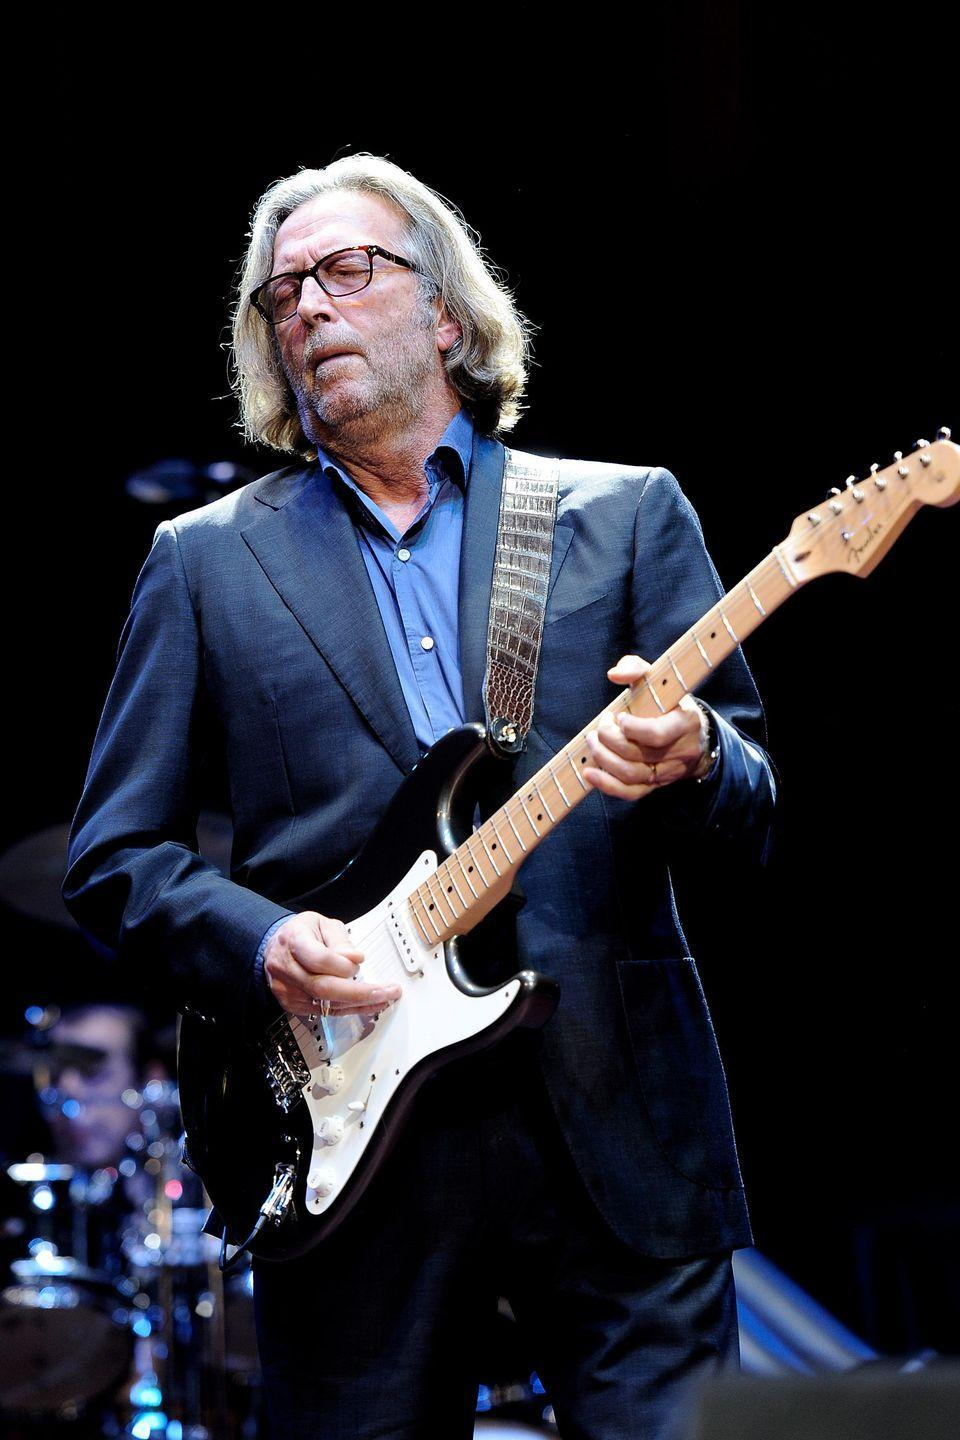 """<p>The English guitarist struggled with his alcohol addiction for much of his early career. After the birth of his son in 1986, Clapton made the decision to truly get sober and has continued to live as such ever since. </p><p>H/T: <a href=""""https://www.vanityfair.com/style/2007/11/clapton200711"""" rel=""""nofollow noopener"""" target=""""_blank"""" data-ylk=""""slk:Vanity Fair"""" class=""""link rapid-noclick-resp"""">Vanity Fair</a></p>"""